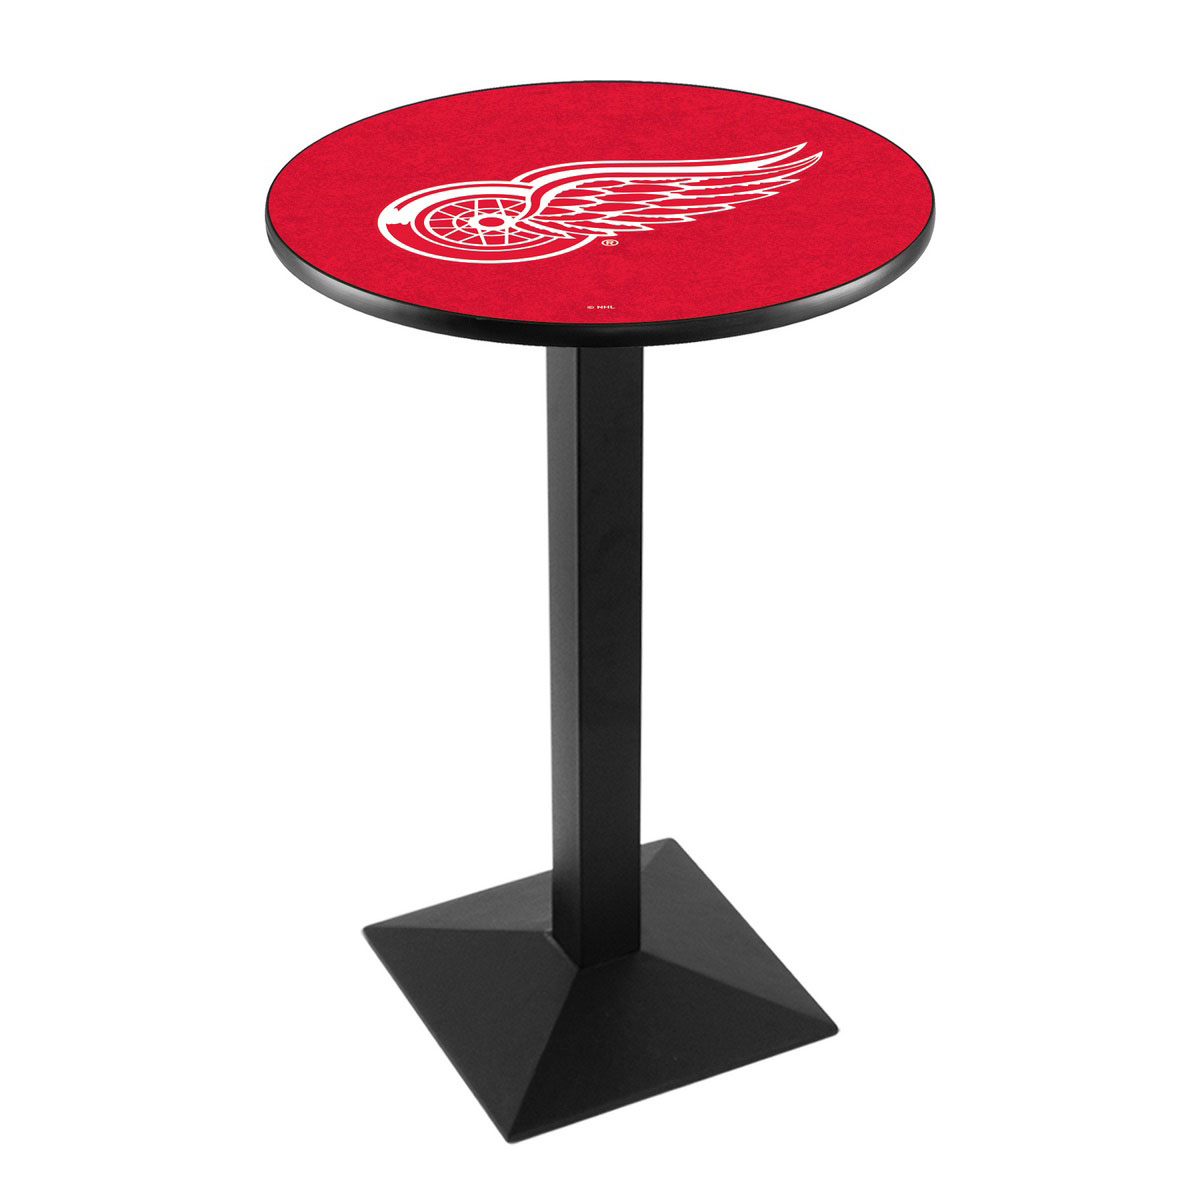 Stunning Detroit Wings Logo Pub Bar Table Square Stand Product Photo